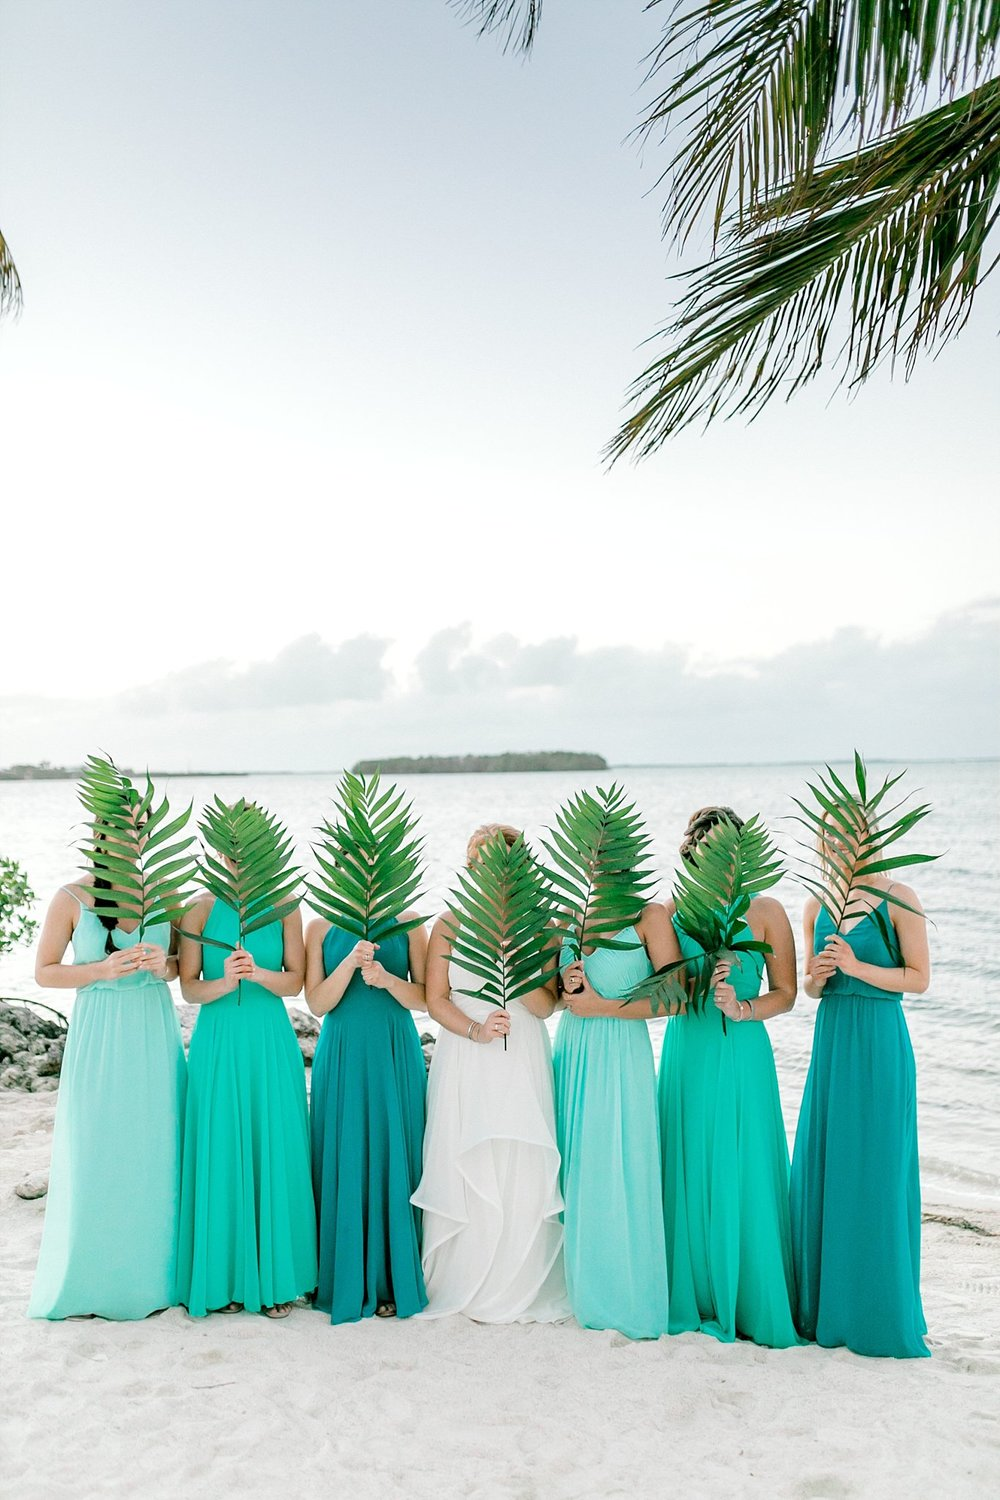 Magdalena Studios Key Largo Destination Wedding Photographer Tropical Island Florida Wedding Miami Vizcaya Gardens Romantic Destination Dreamy Film Wedding Photographer55.jpg